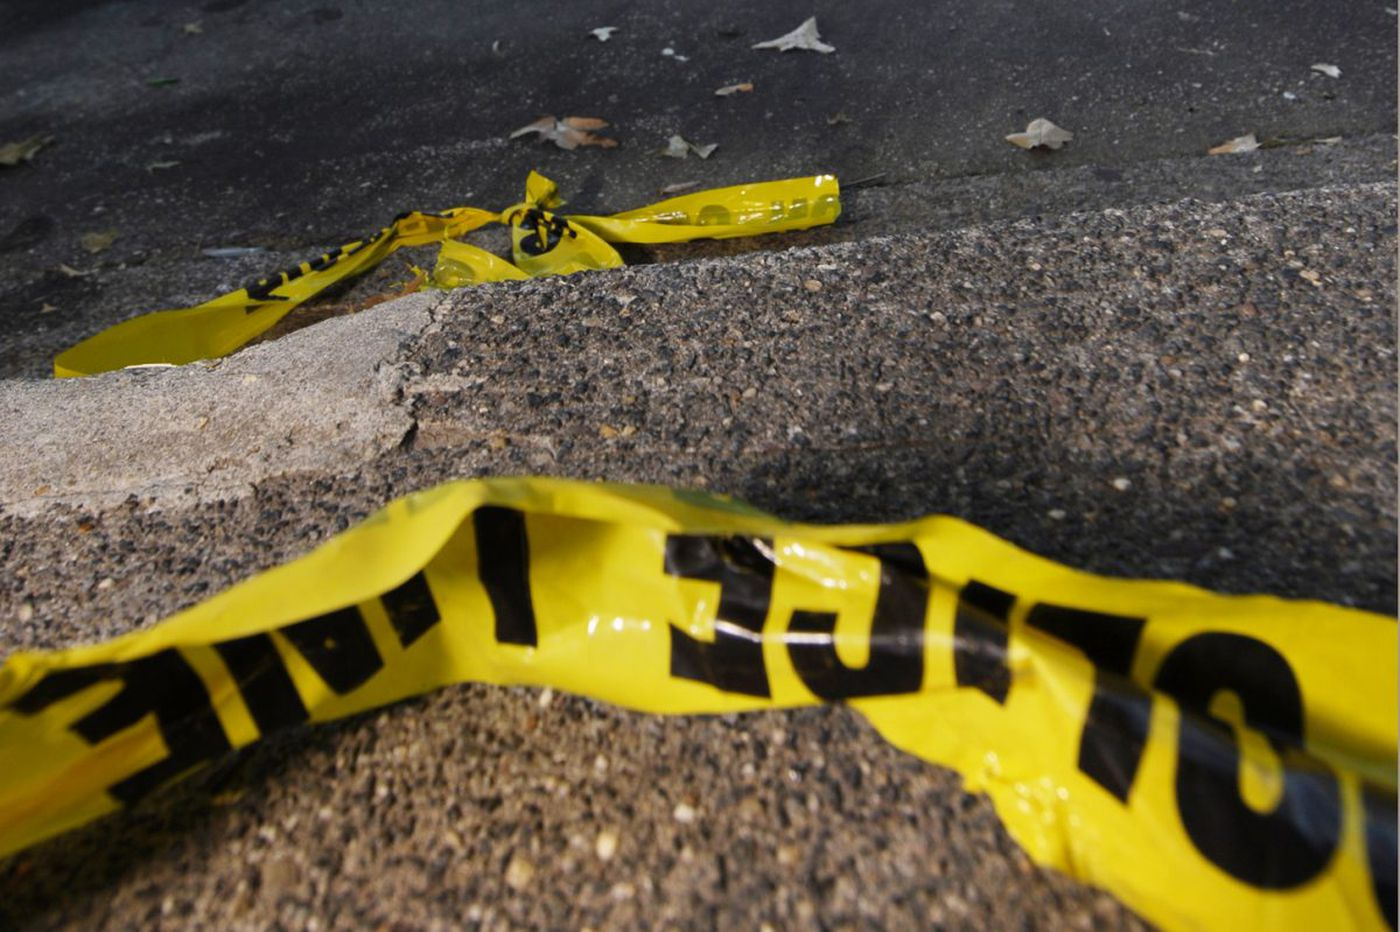 24-year-old shot and killed in North Philly